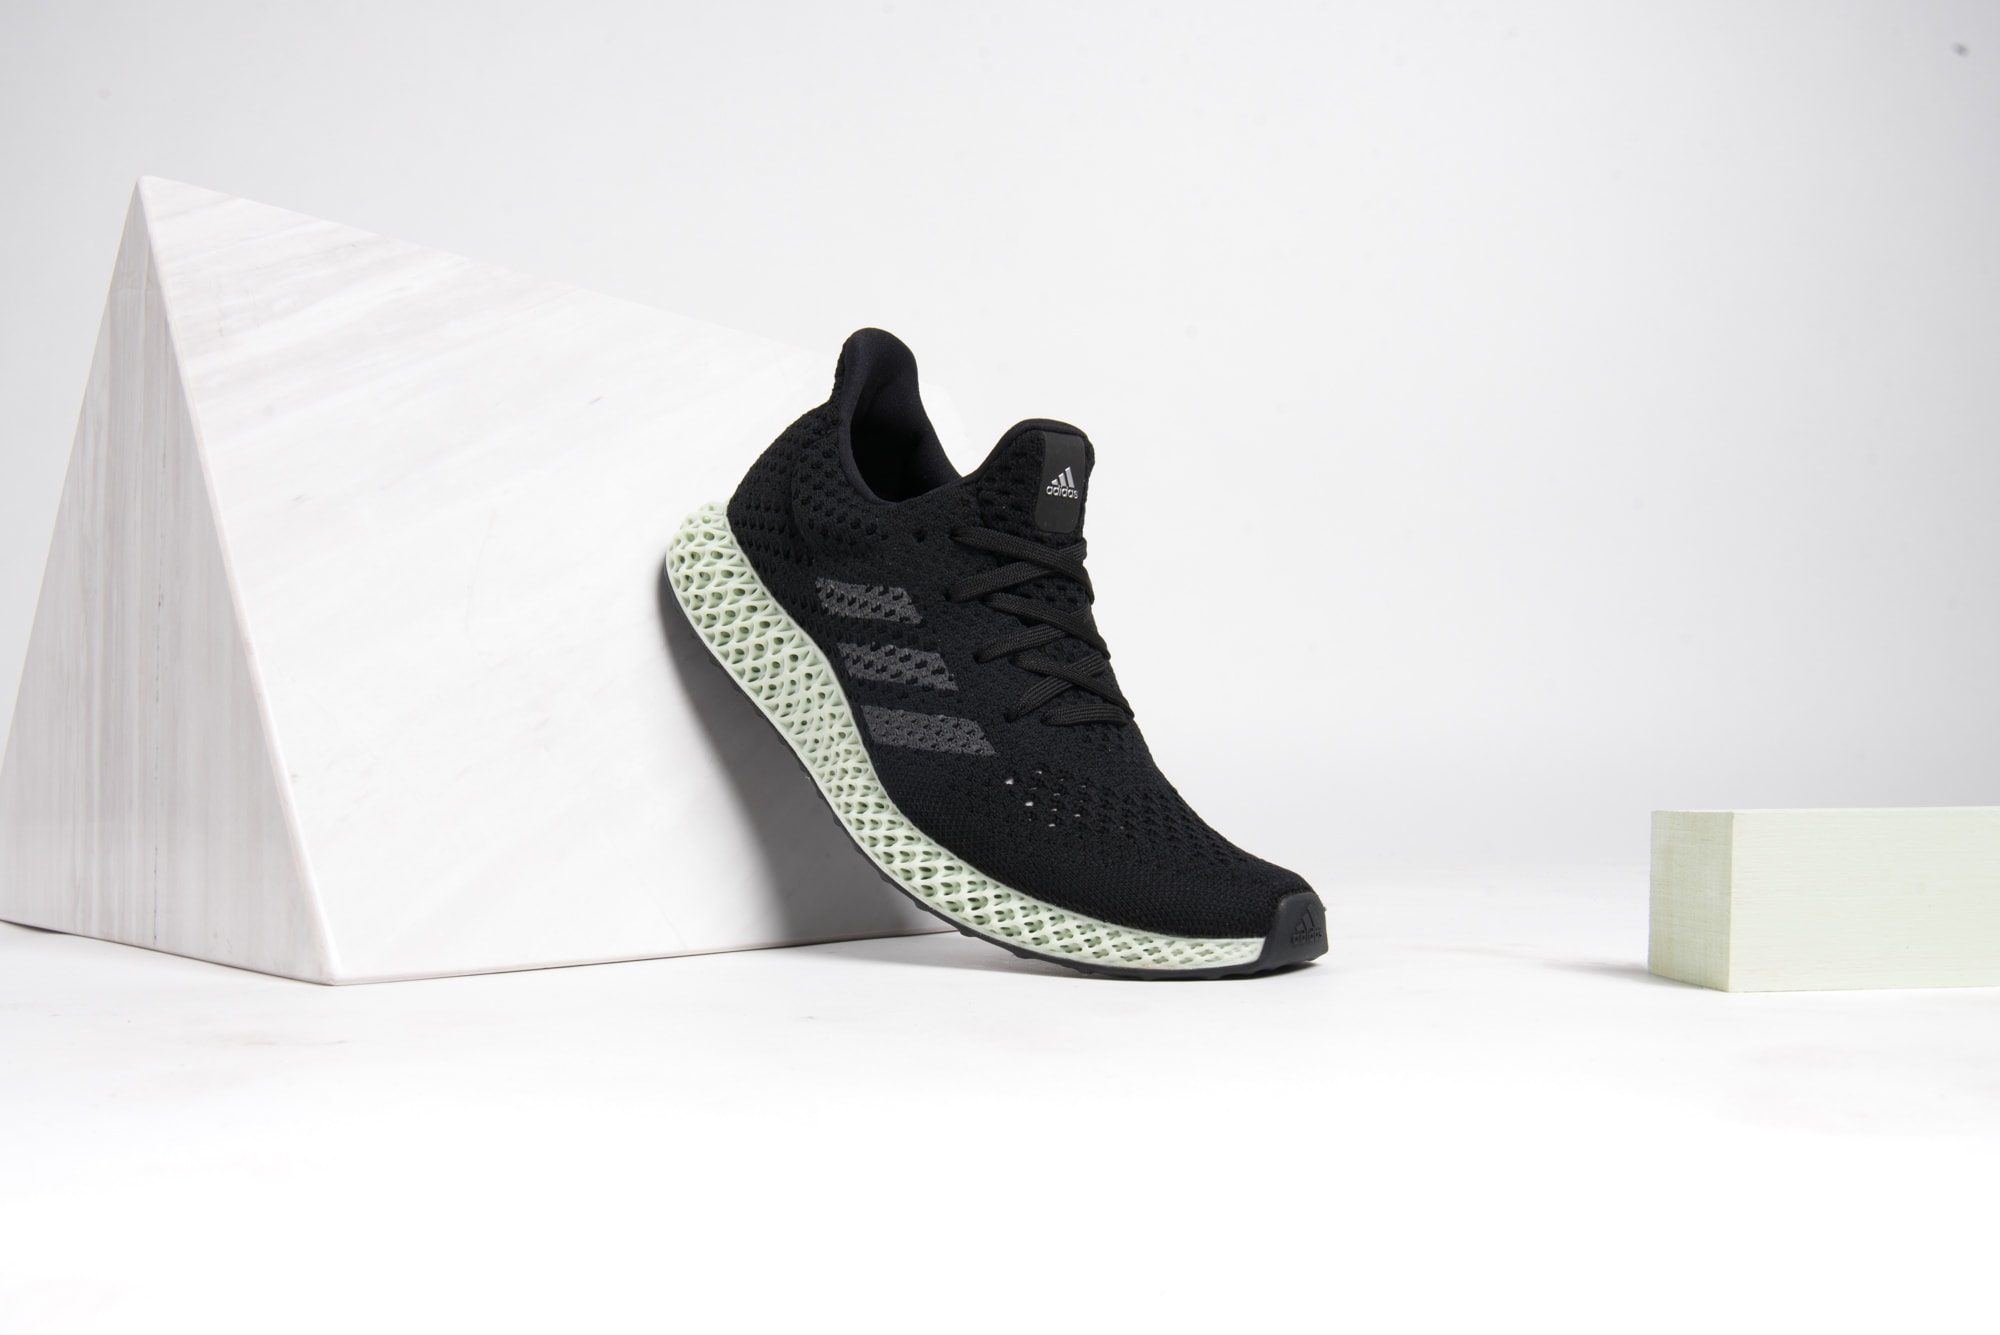 Reign Deadstock Program Adidas Futurecraft 4D